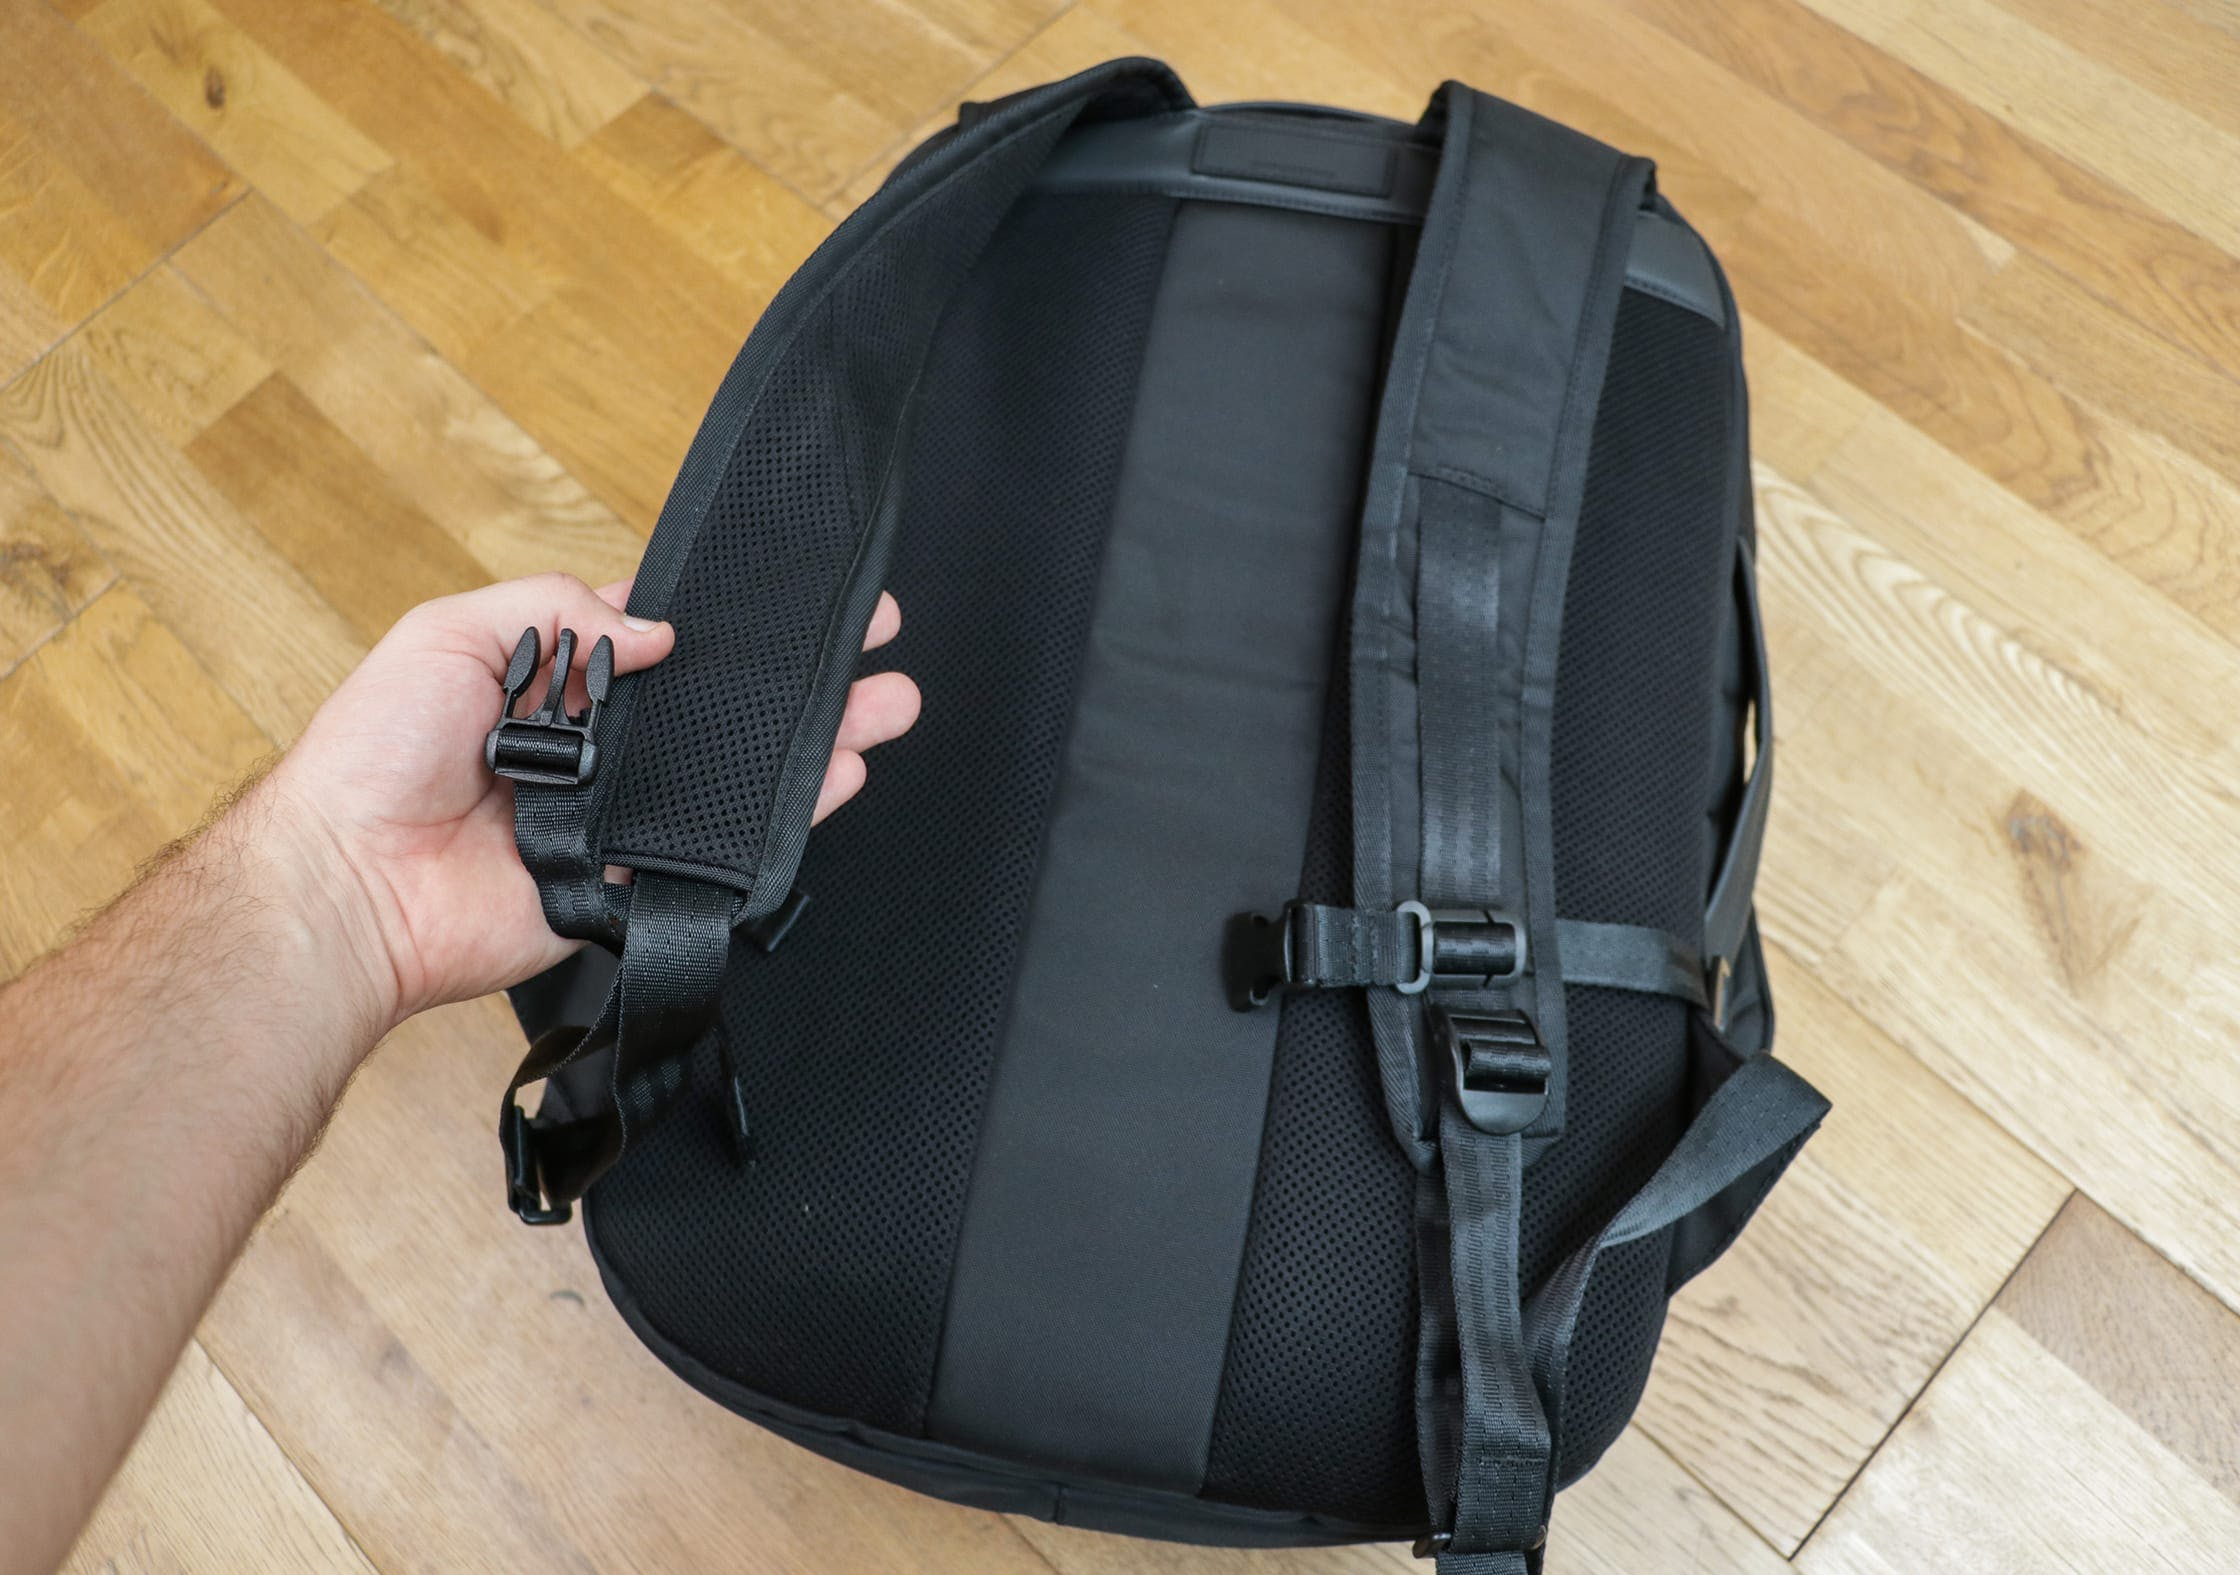 OPPOSETHIS Invisible Carry-On Shoulder Straps & Back Padding